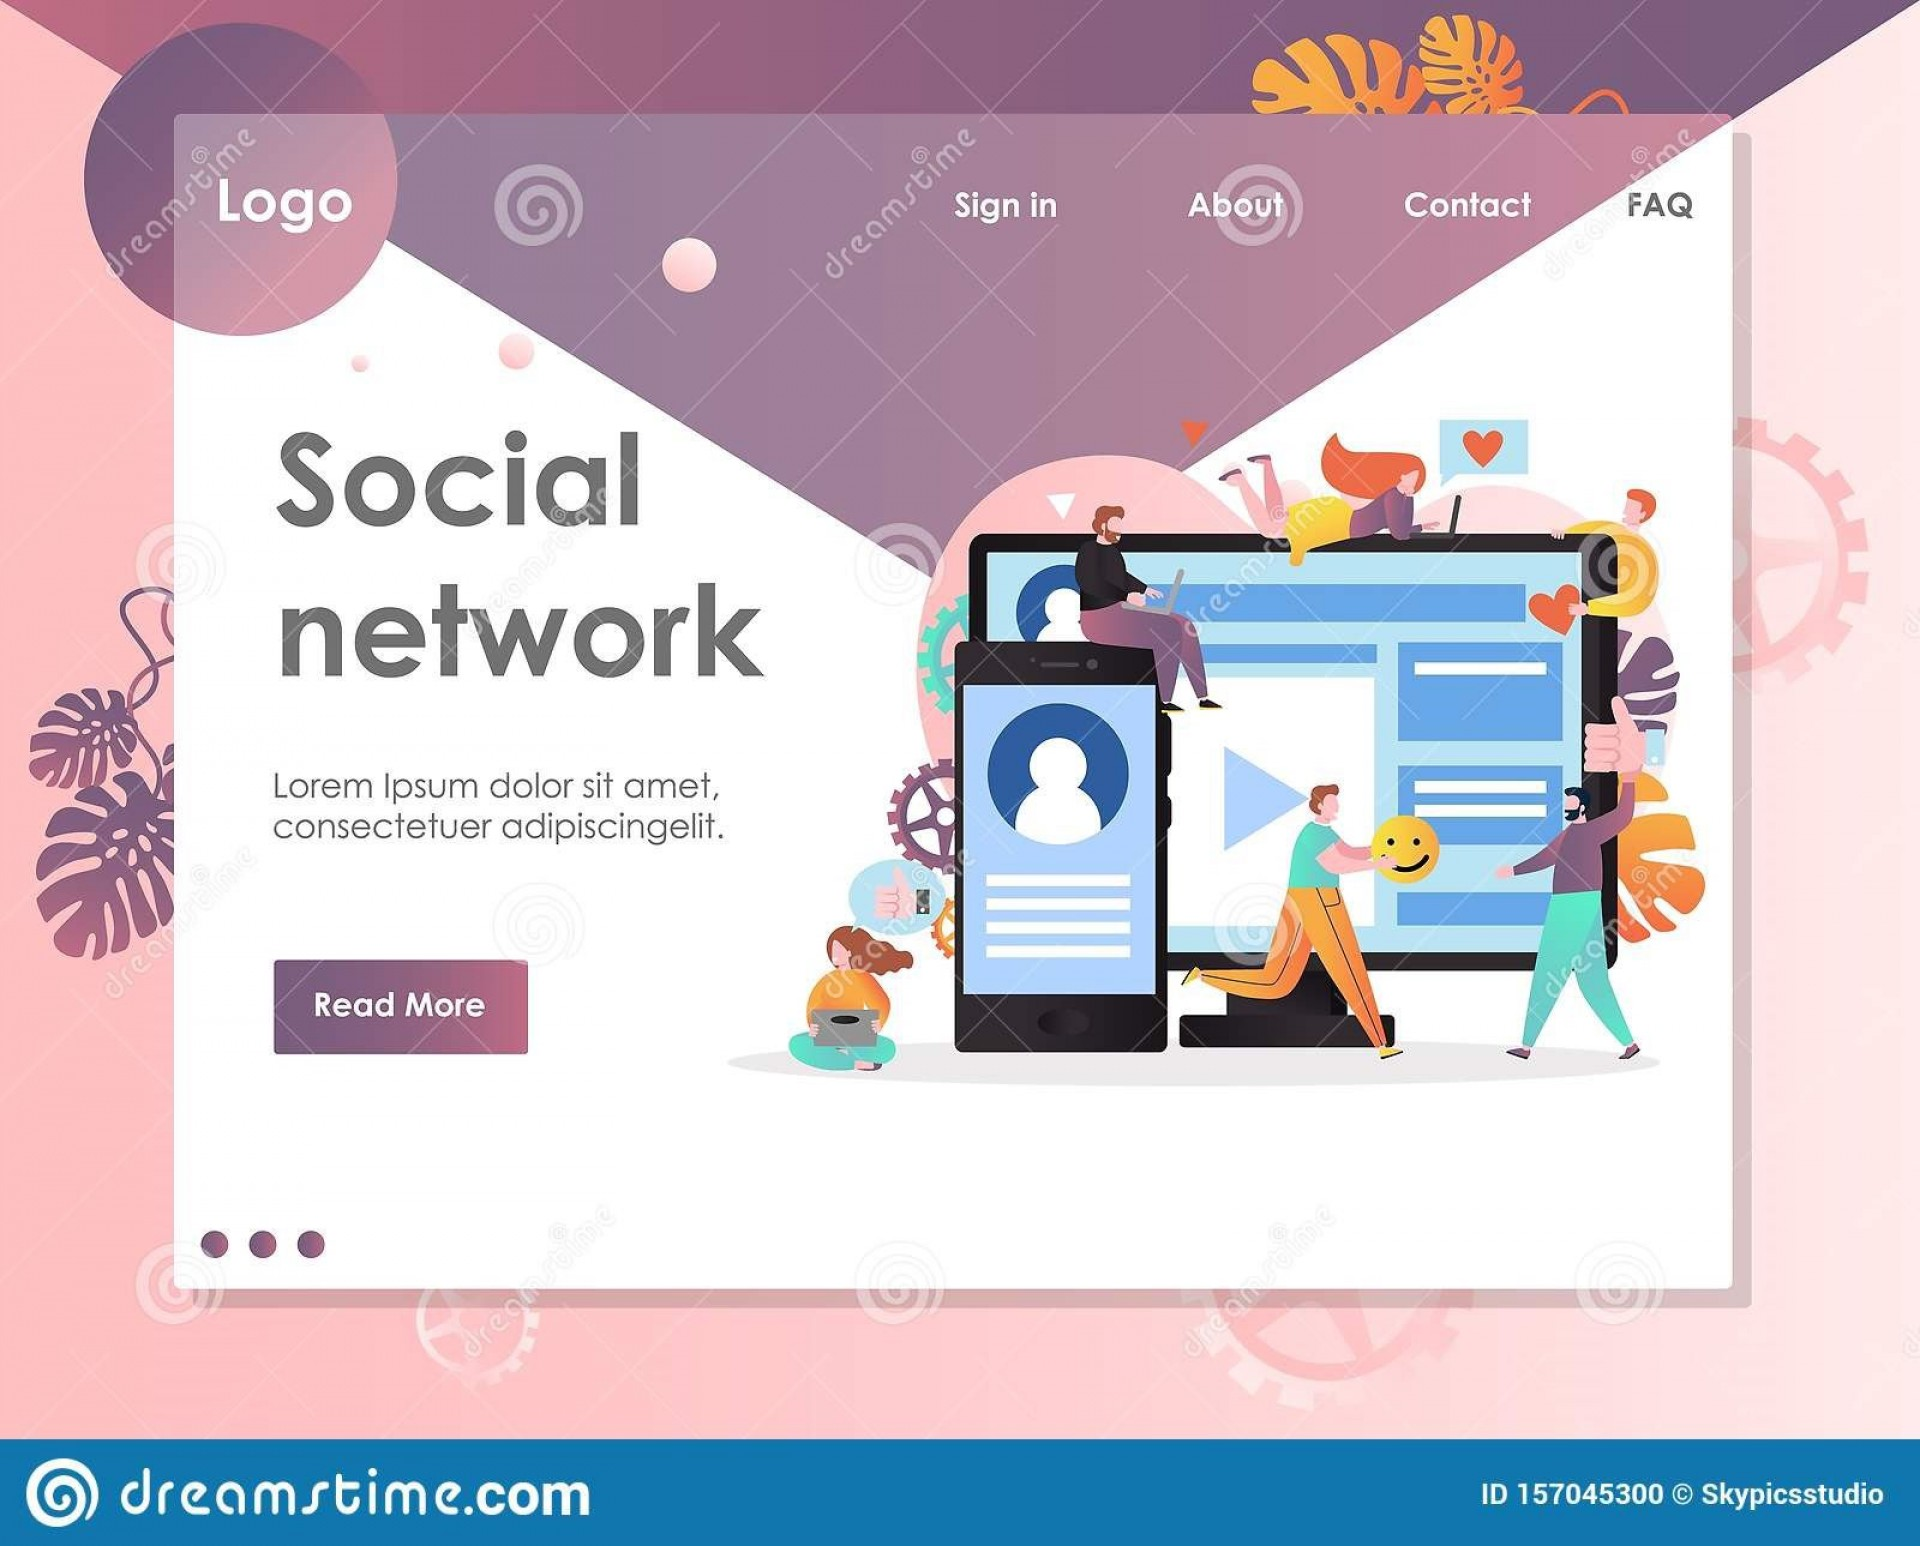 007 Unforgettable Social Media Web Template Highest Clarity  Templates Best Website Free Download1920